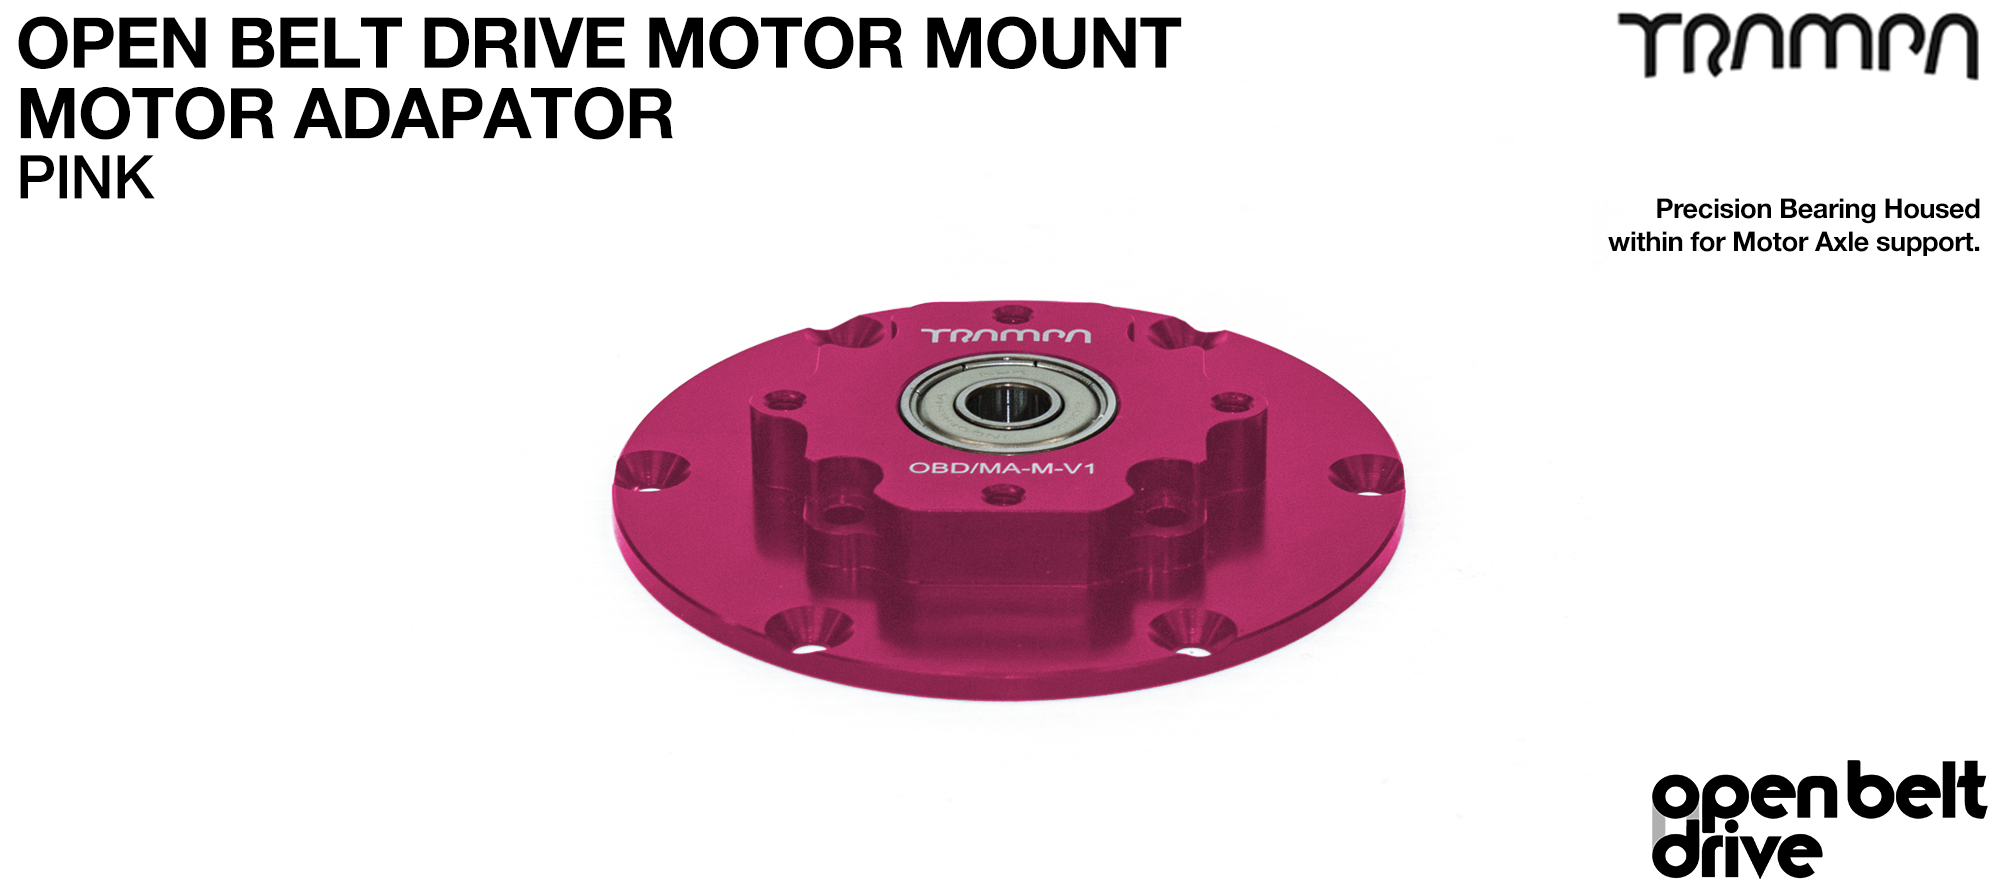 OBD Motor Adaptor with Housed Bearing - PINK